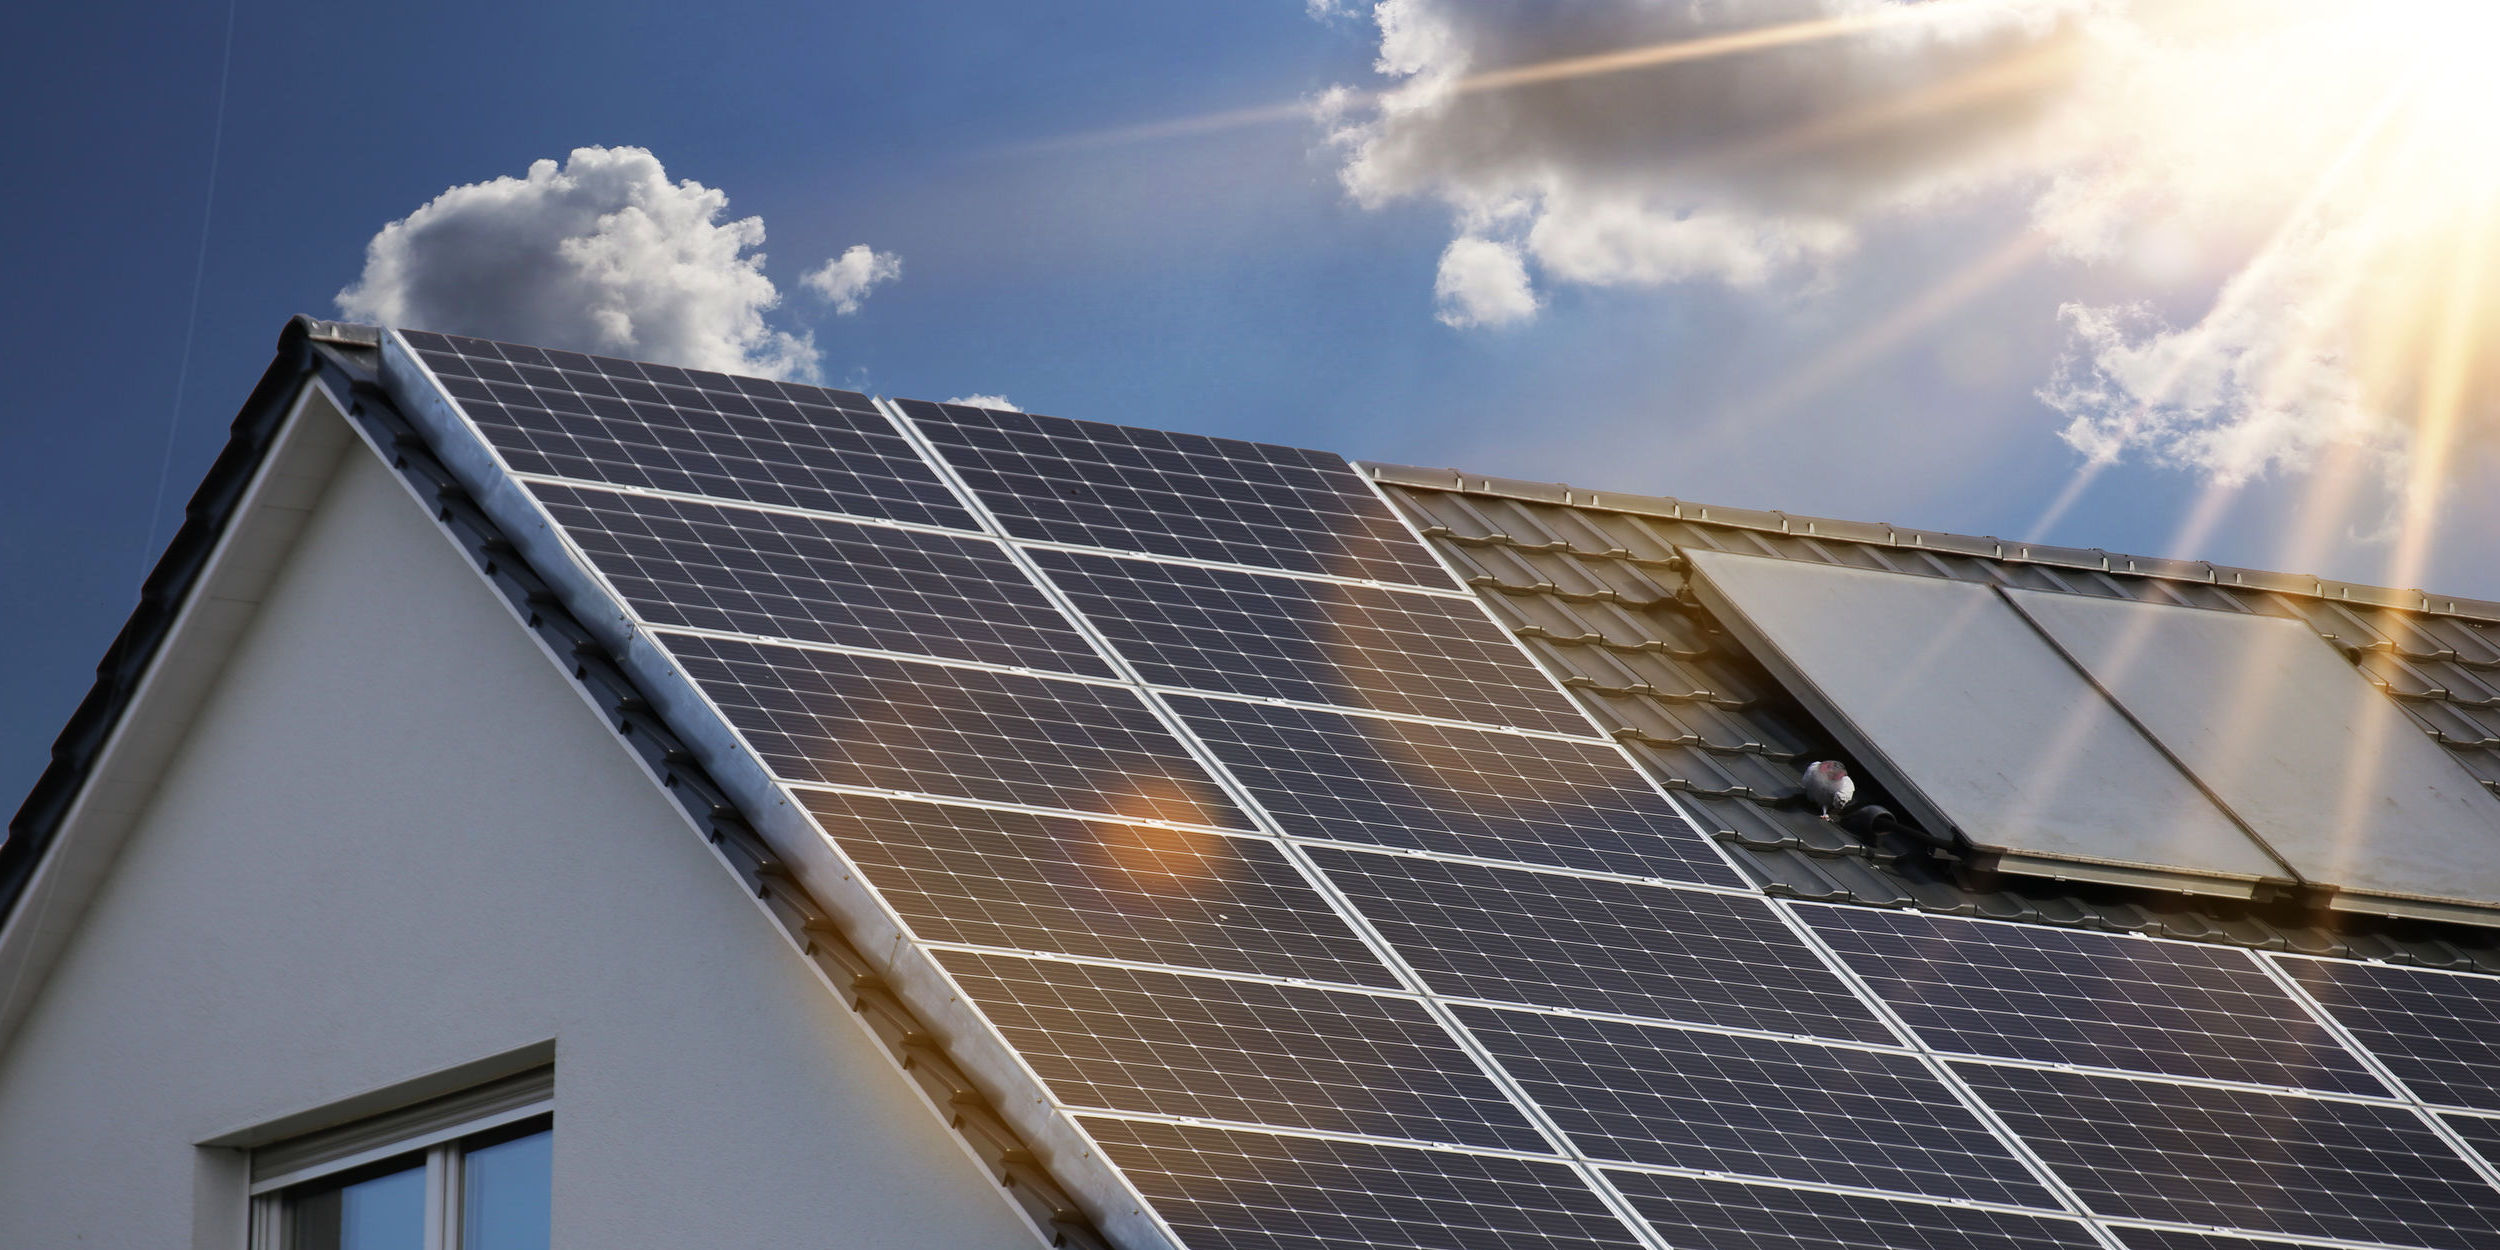 How Does the Sun's Path Affect the Performance of Your Solar Array?